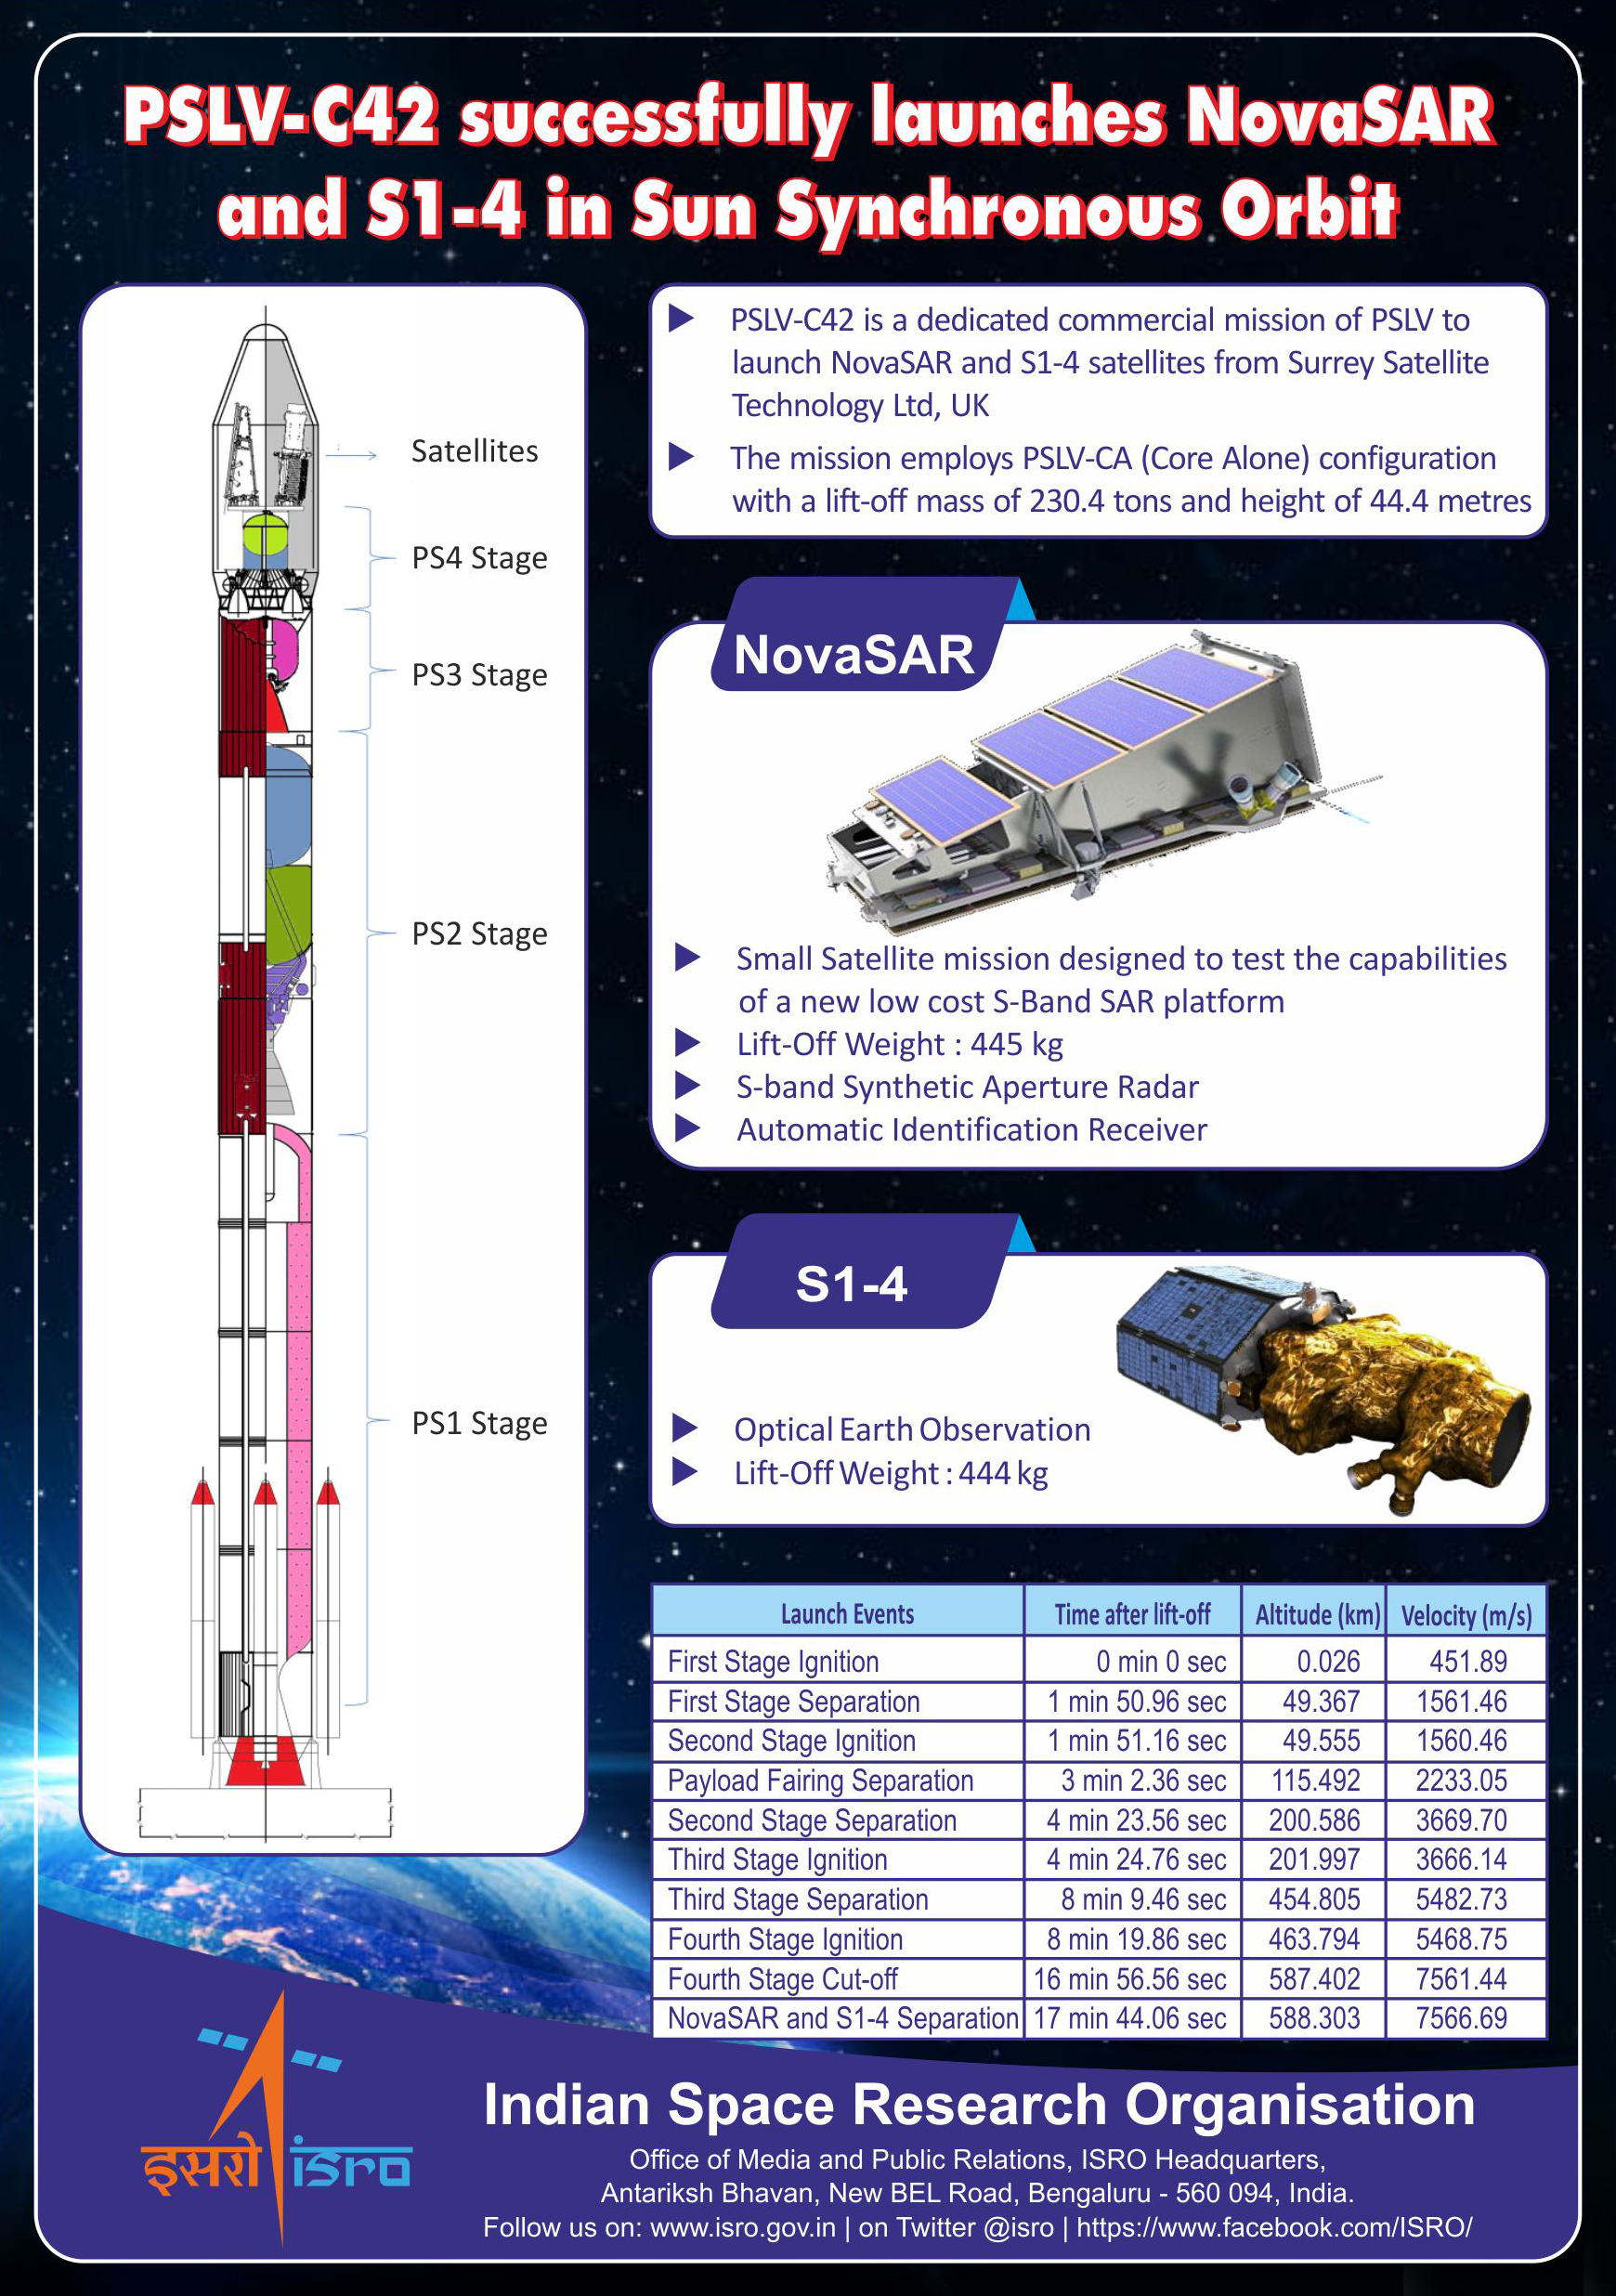 PSLV-C42 successfully launches NovaSAR & S1-4 in Sun Synchronous Orbit